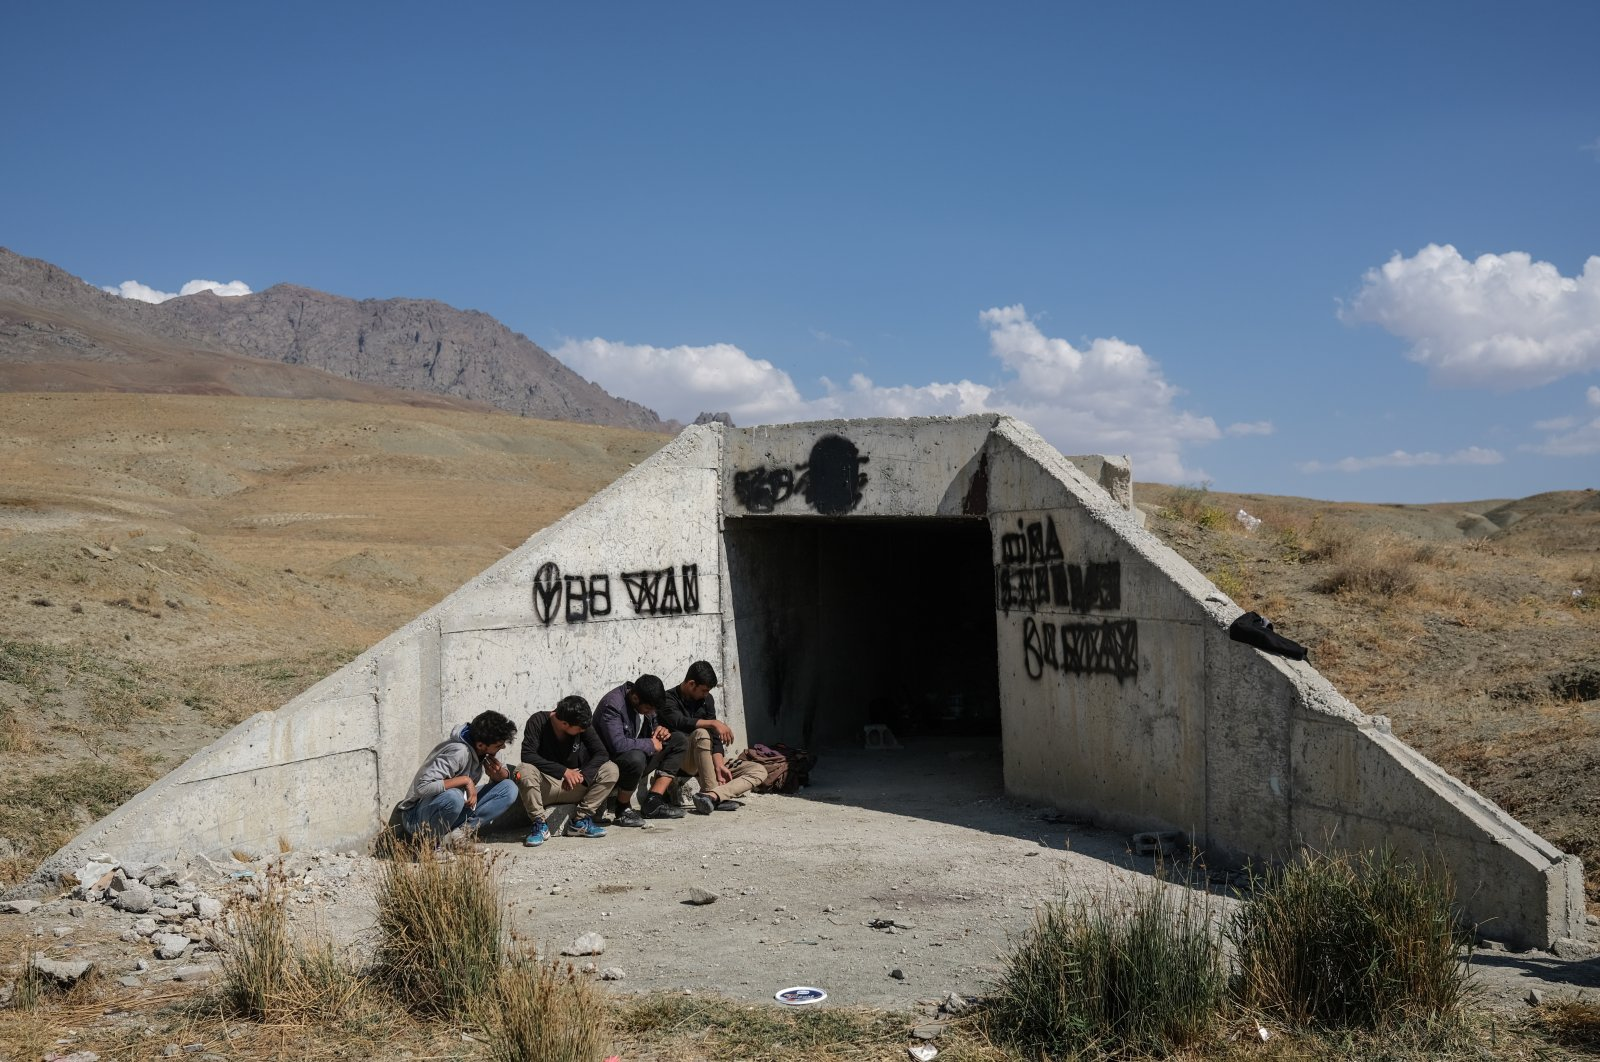 Migrants from Iran wait in front of an underpass in the border city of Van, eastern Turkey, Aug. 13, 2021. (EPA Photo)